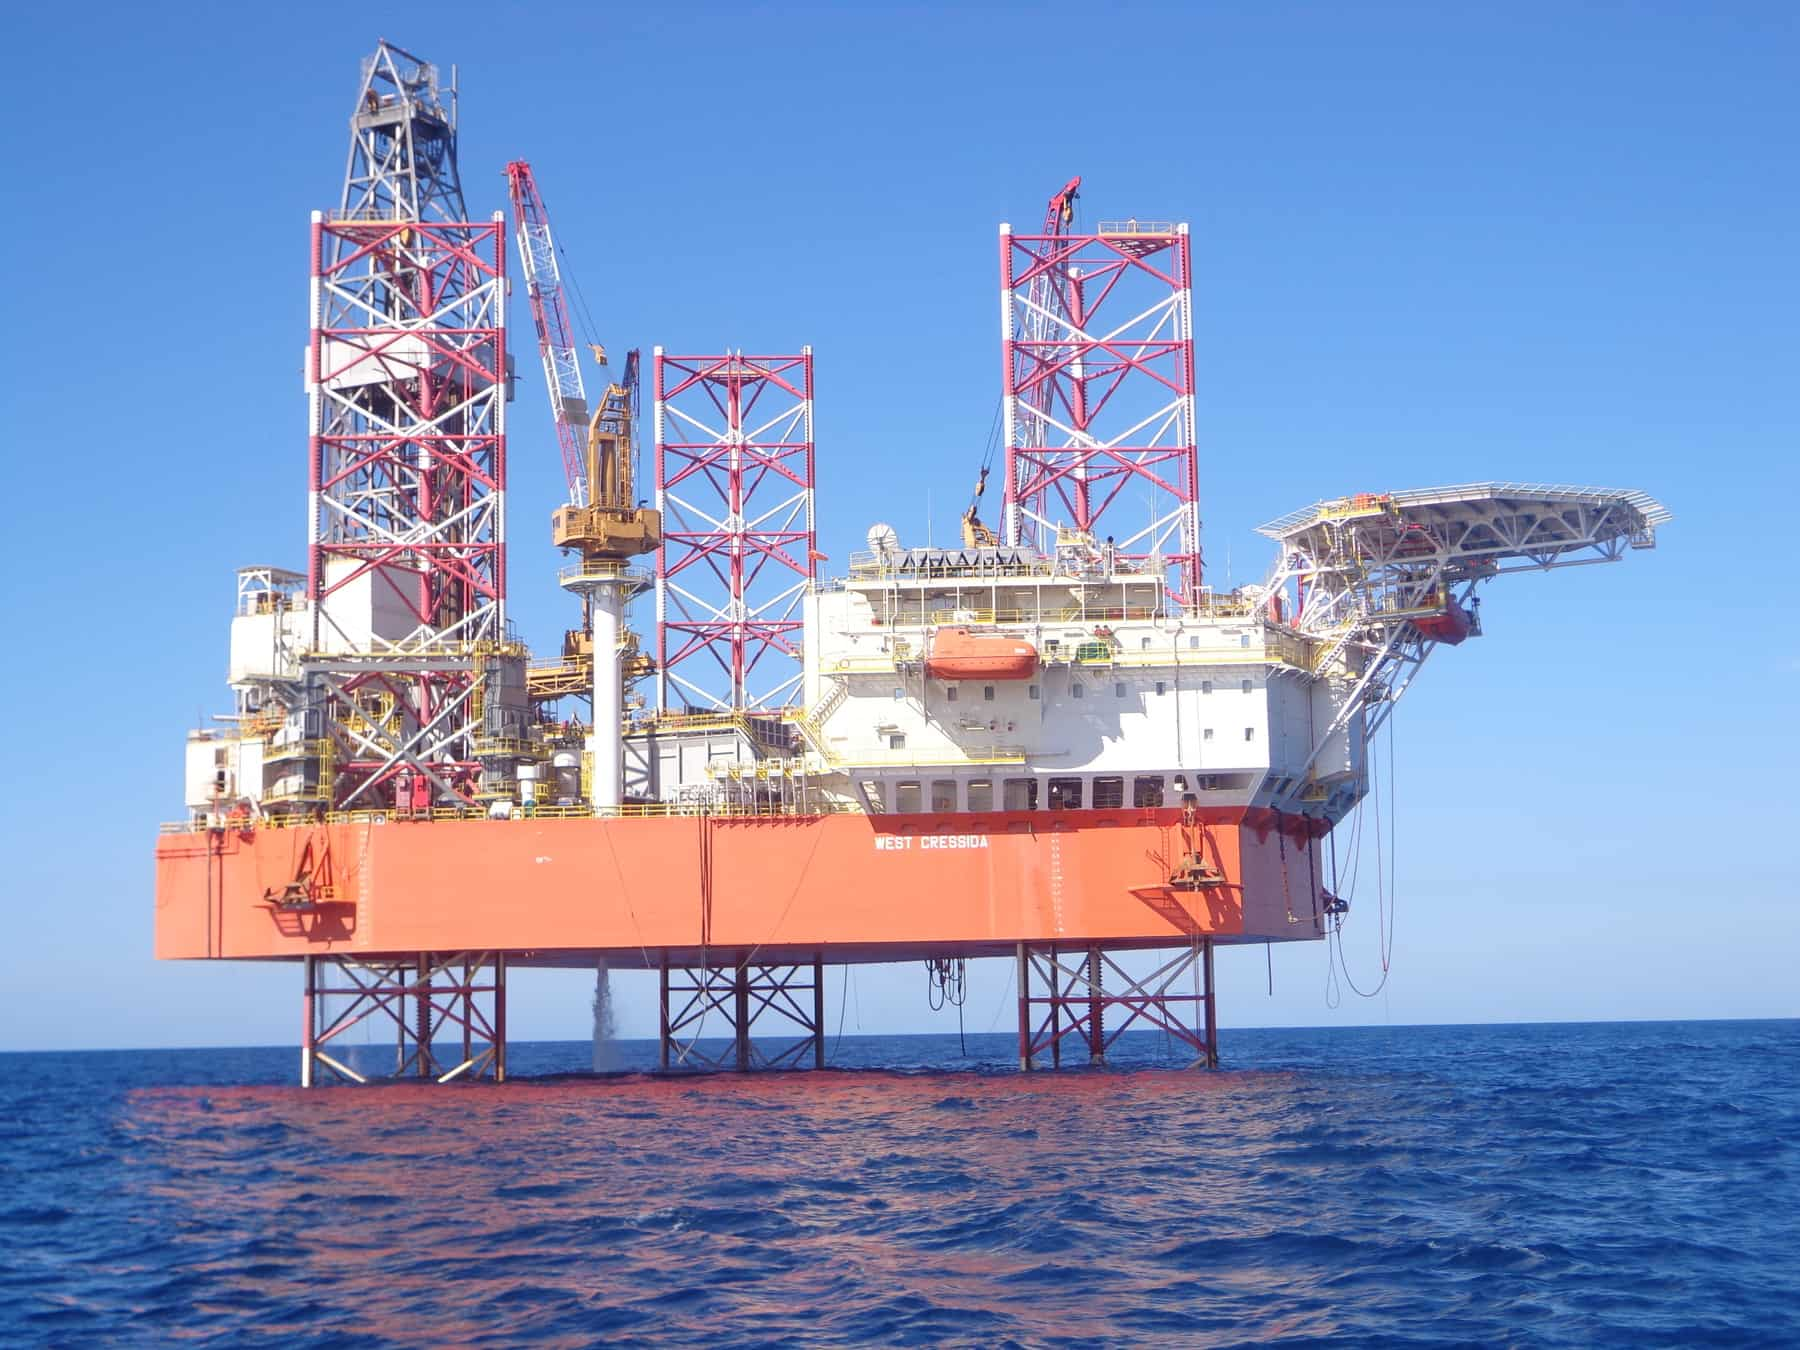 Colourful offshore platform in the sea